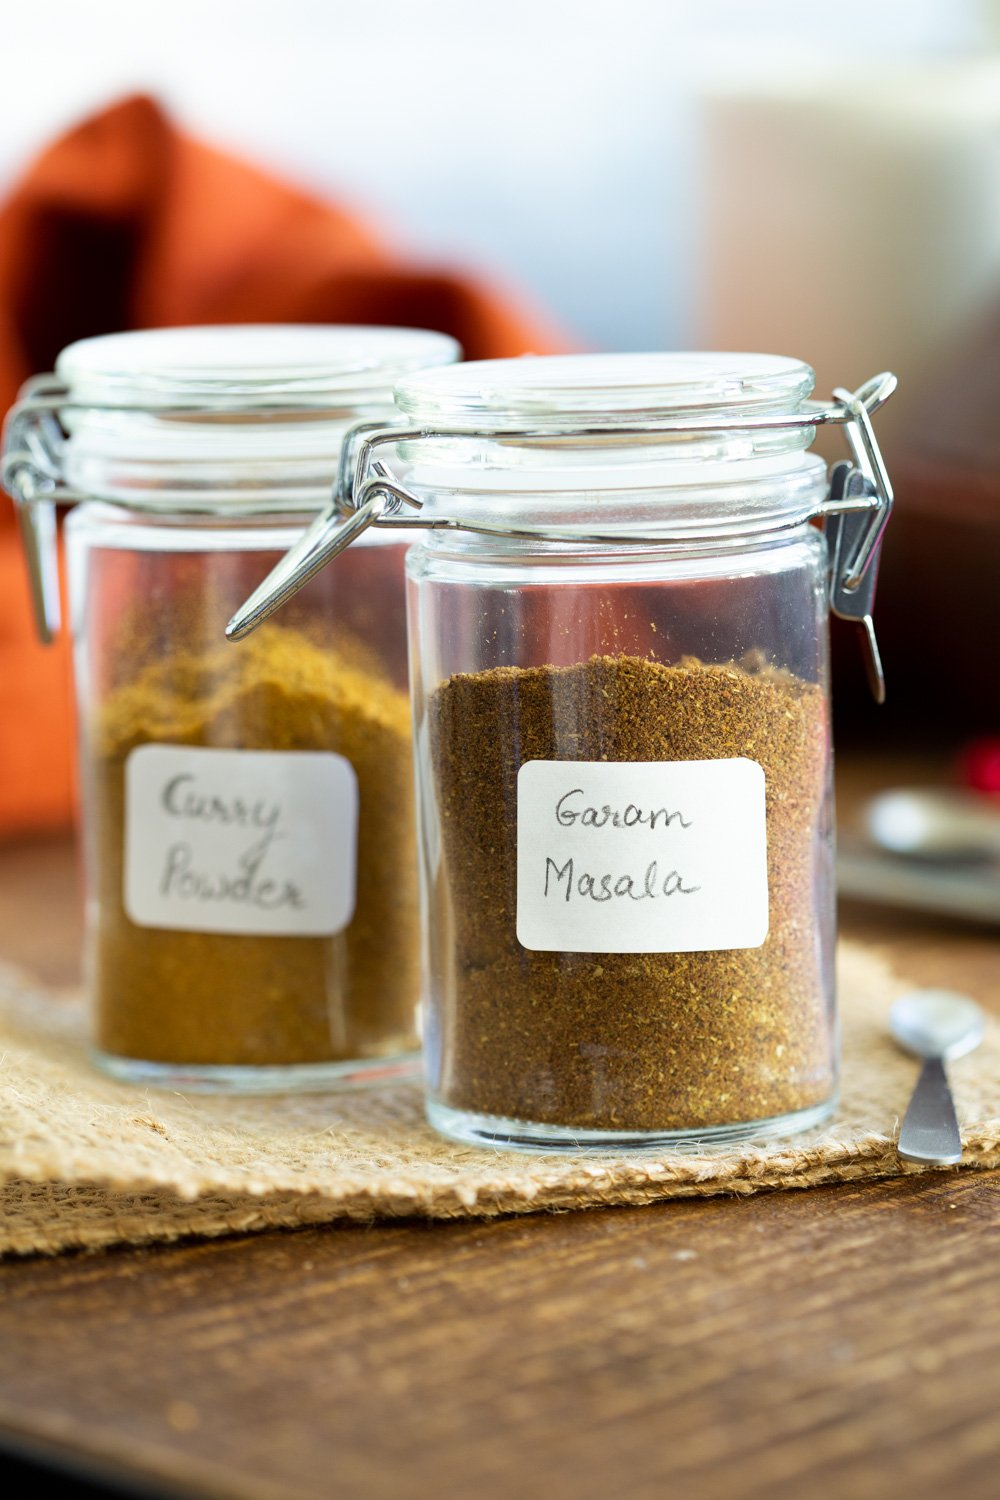 Homemade Spice Mixes for Gifts! Fresh spice blends take the meal from eh to wow. Gift these homemade mixes like garam masala, curry powder, cajun spice, pumpkin pie spice and more. Vegan Glutenfree Recipe